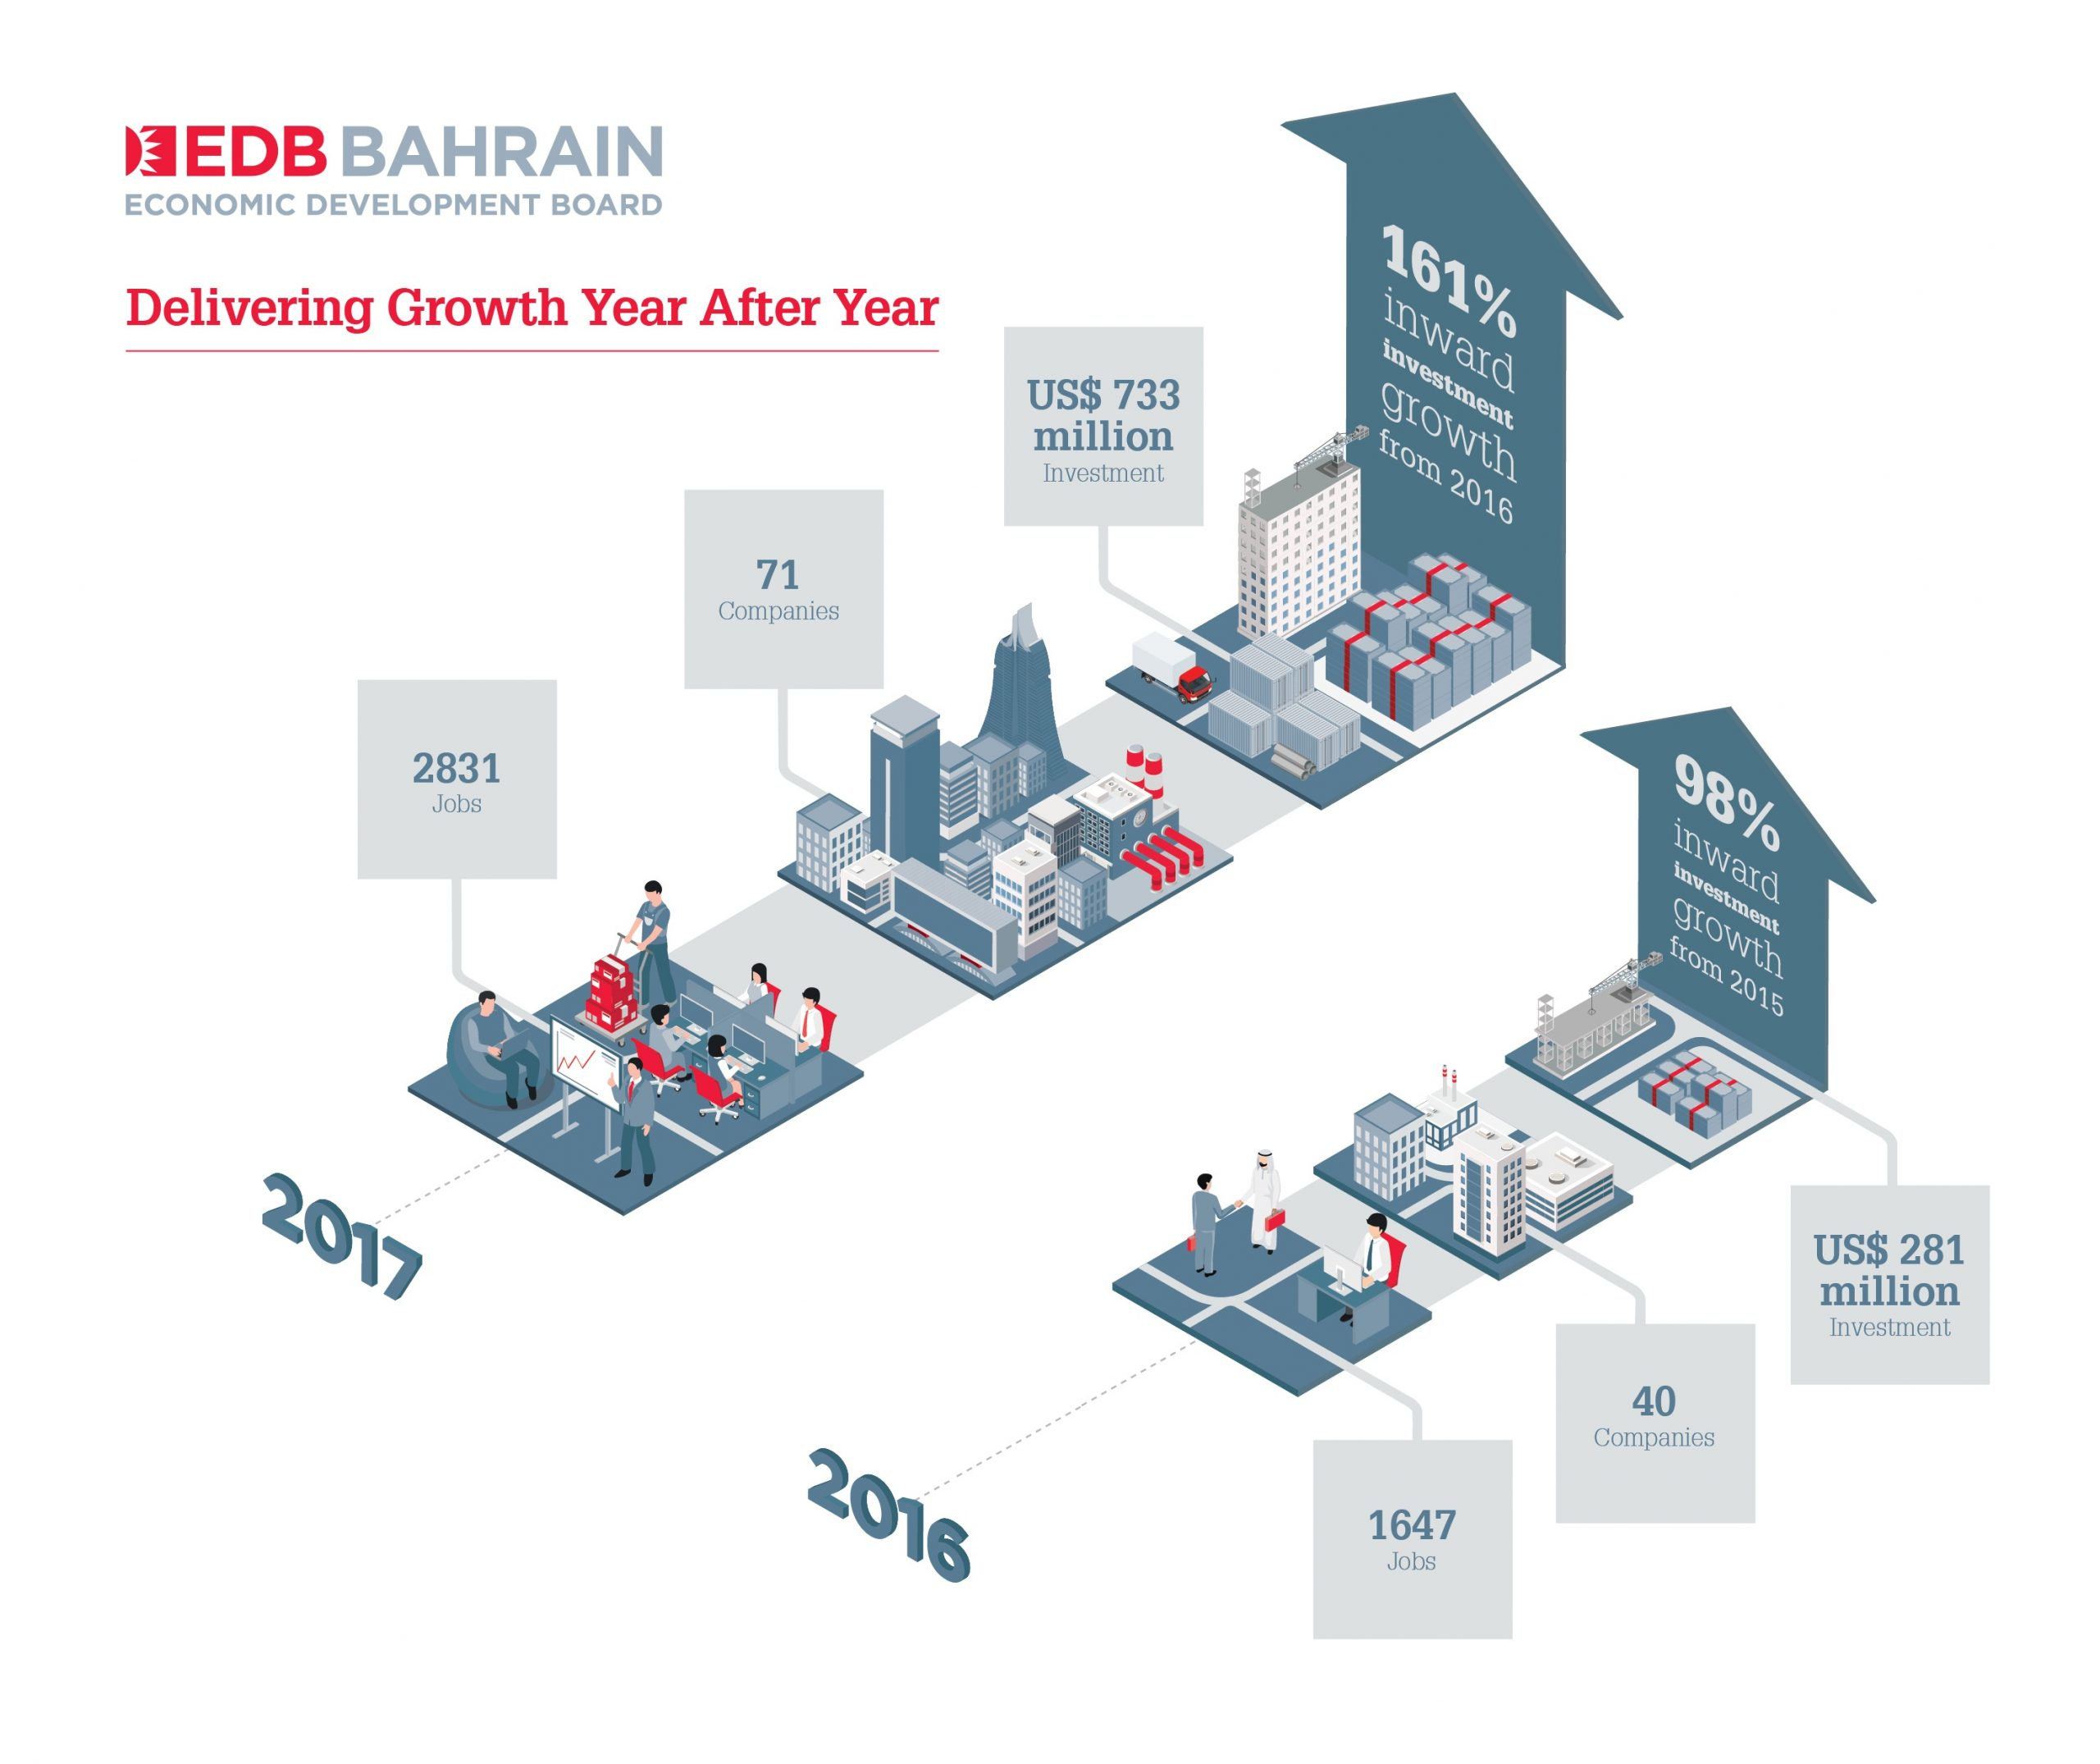 The Bahrain Economic Development Board Attracts US $733 Million of Investments in Record Year